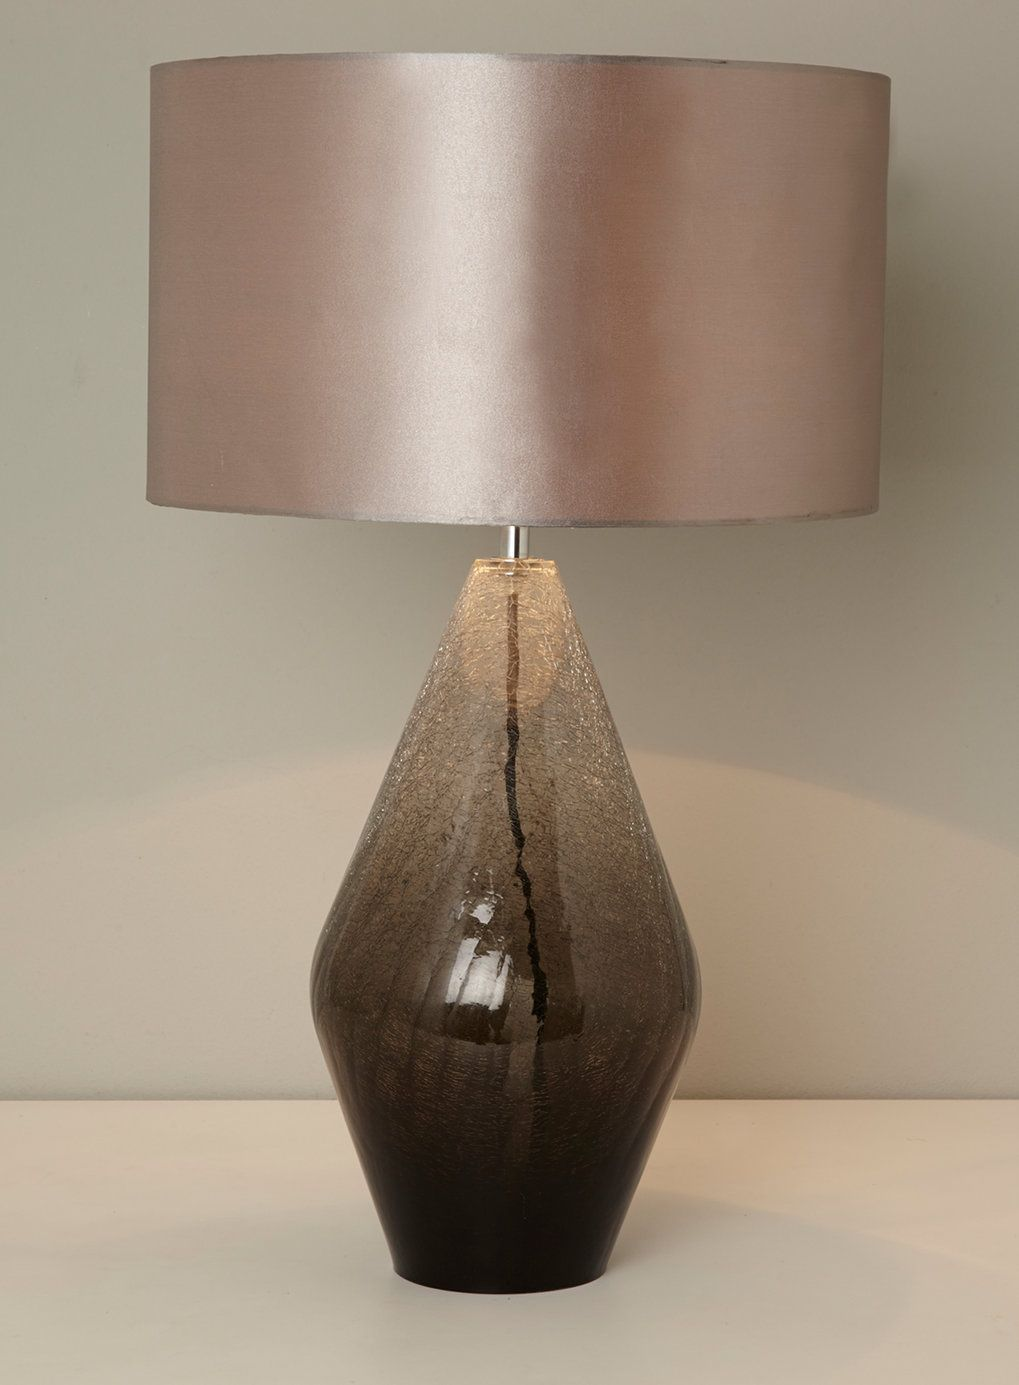 Carrina table lamp bhs a good tall lamp at approx 60cm with smoke carrina table lamp bhs a good tall lamp at approx 60cm with smoke ombre coloured geotapseo Gallery